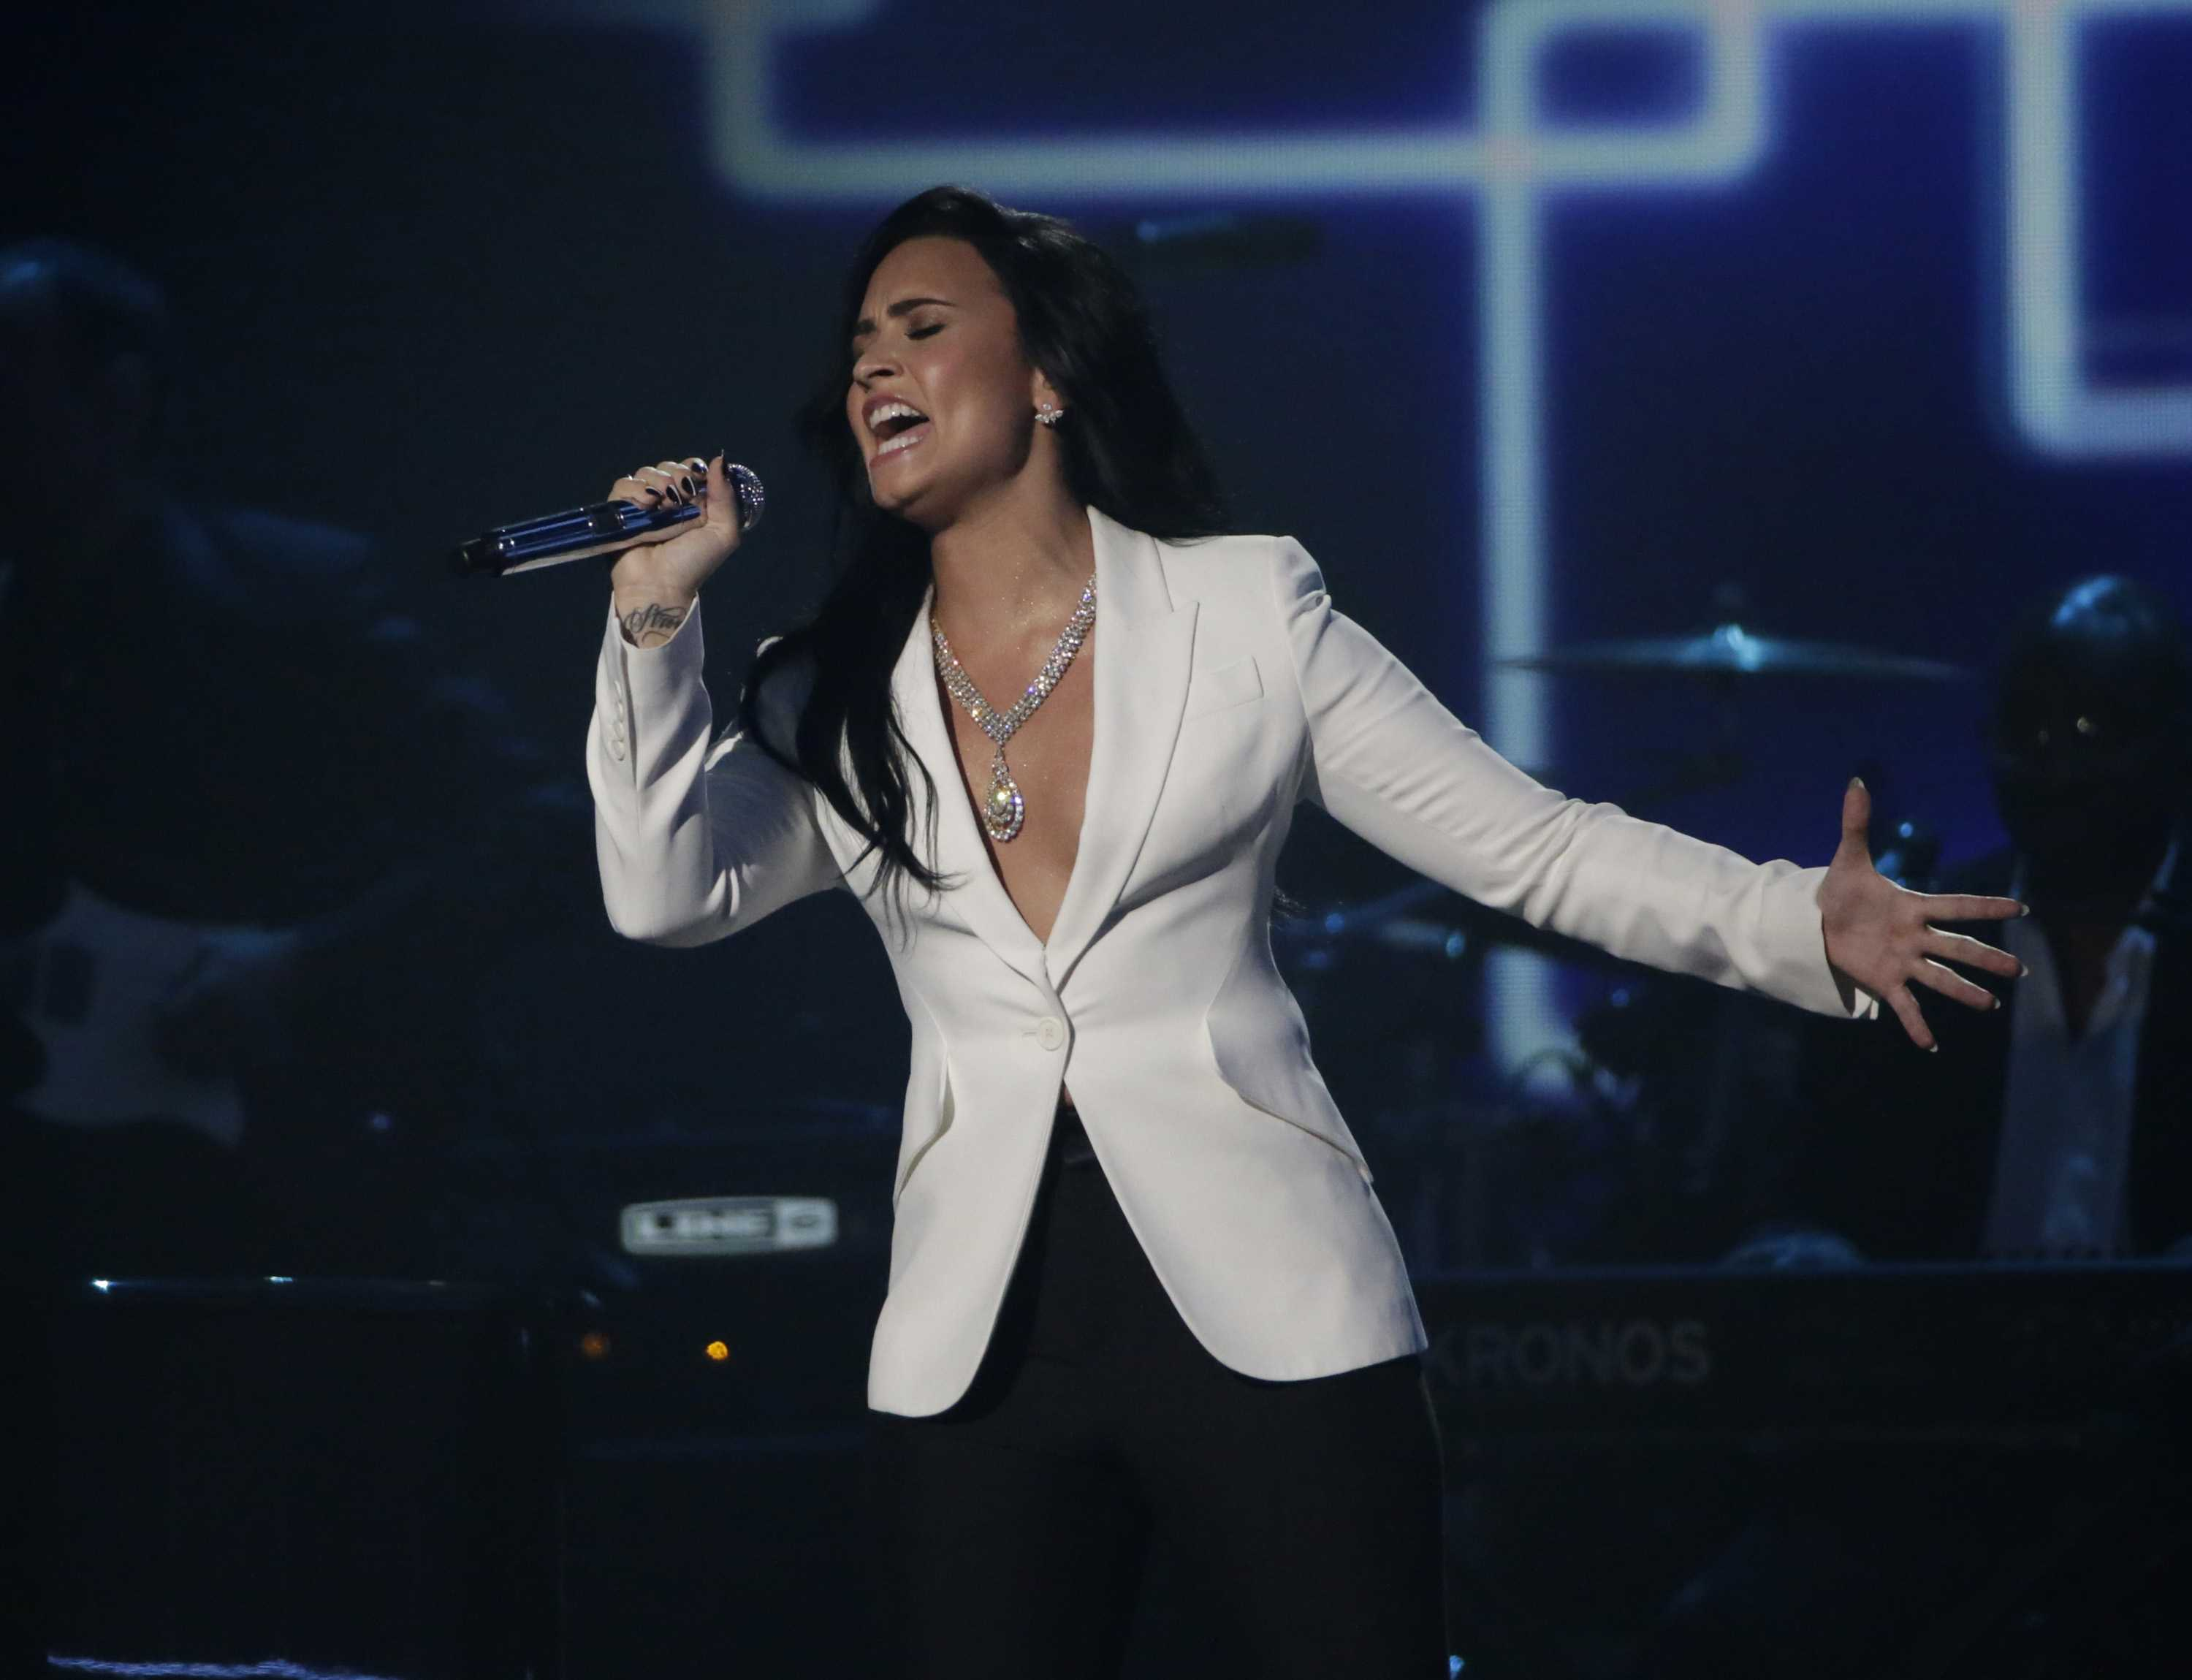 Demi Lovato performs at the 58th Annual Grammy Awards on Monday, Feb. 15, 2016, at the Staples Center in Los Angeles. (Robert Gauthier/Los Angeles Times/TNS)